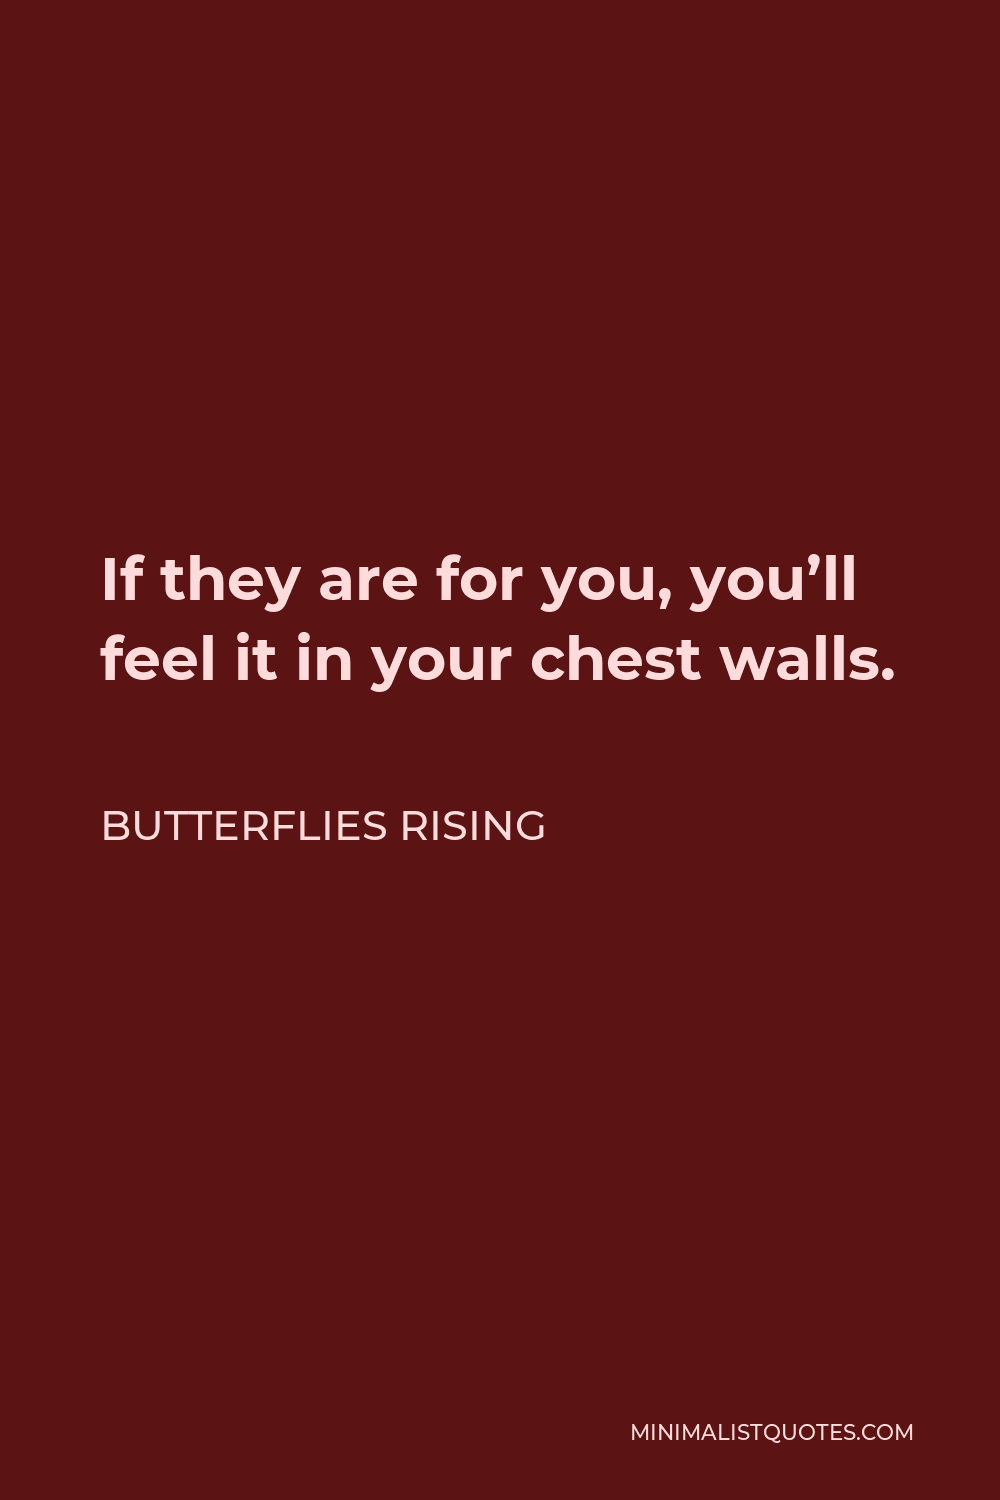 Butterflies Rising Quote - If they are for you, you'll feel it in your chest walls.